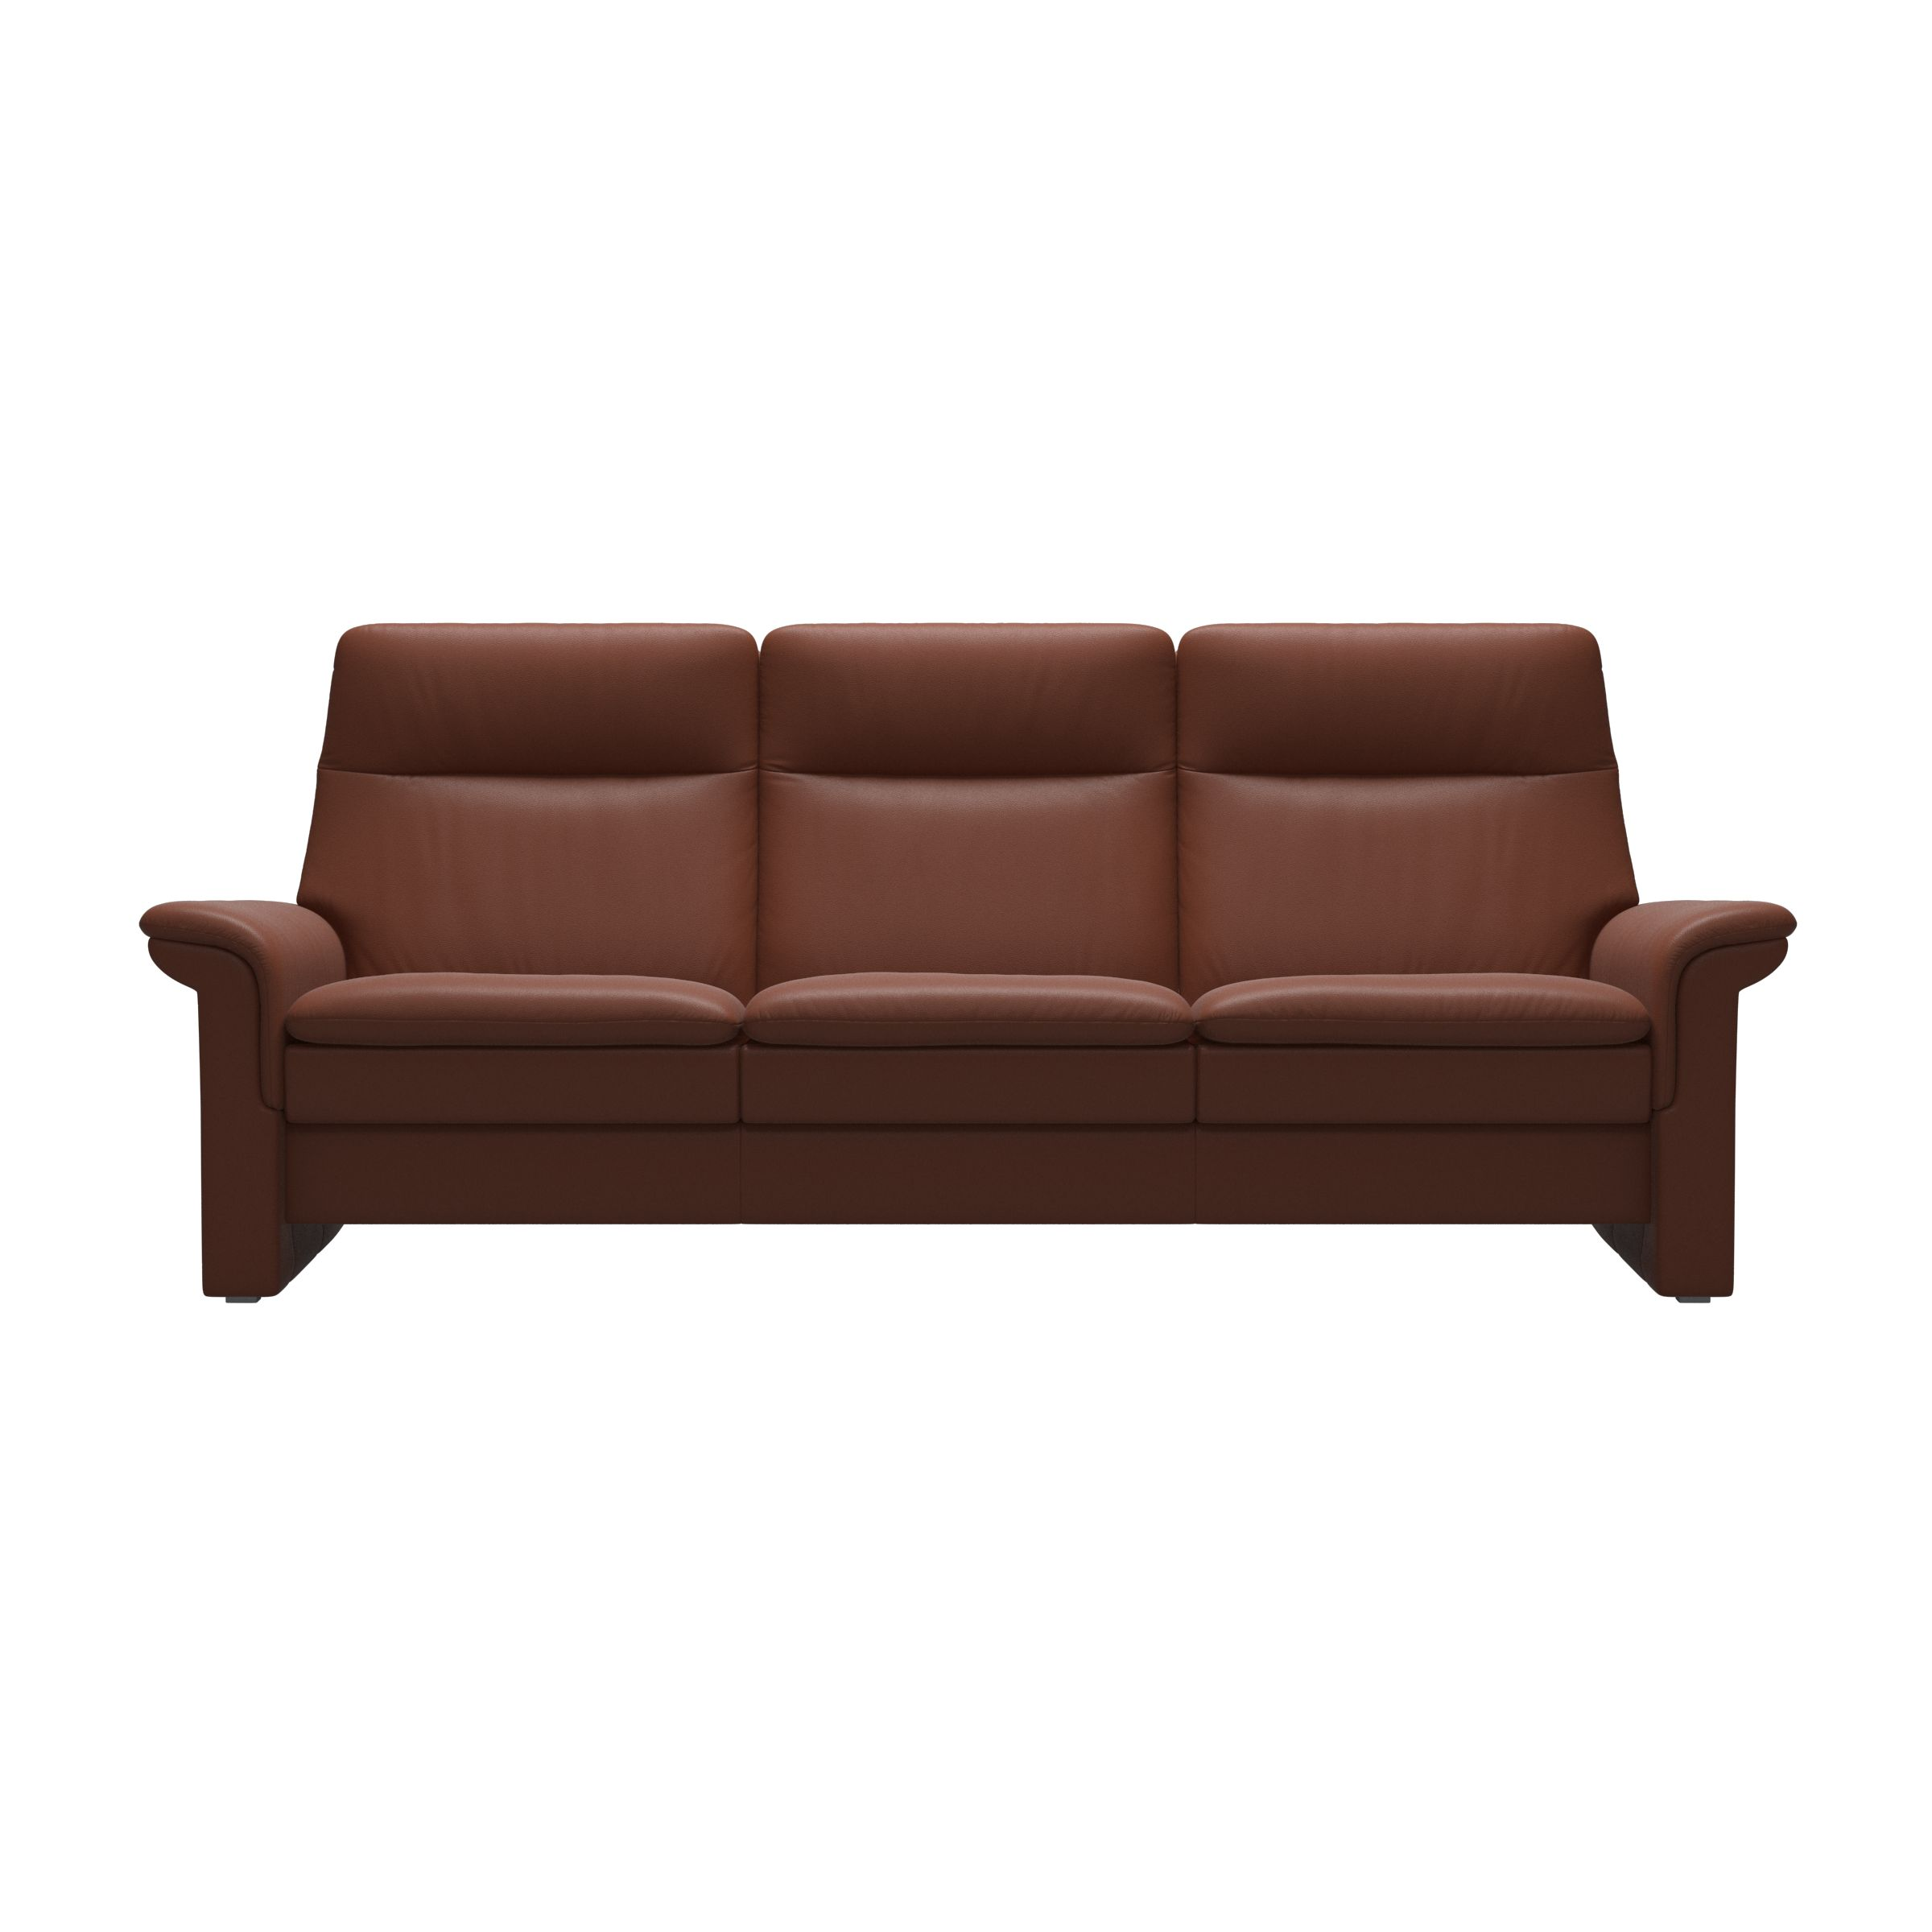 Stressless Ekornes Sessel Stressless Saga High Back Sofa Stressless